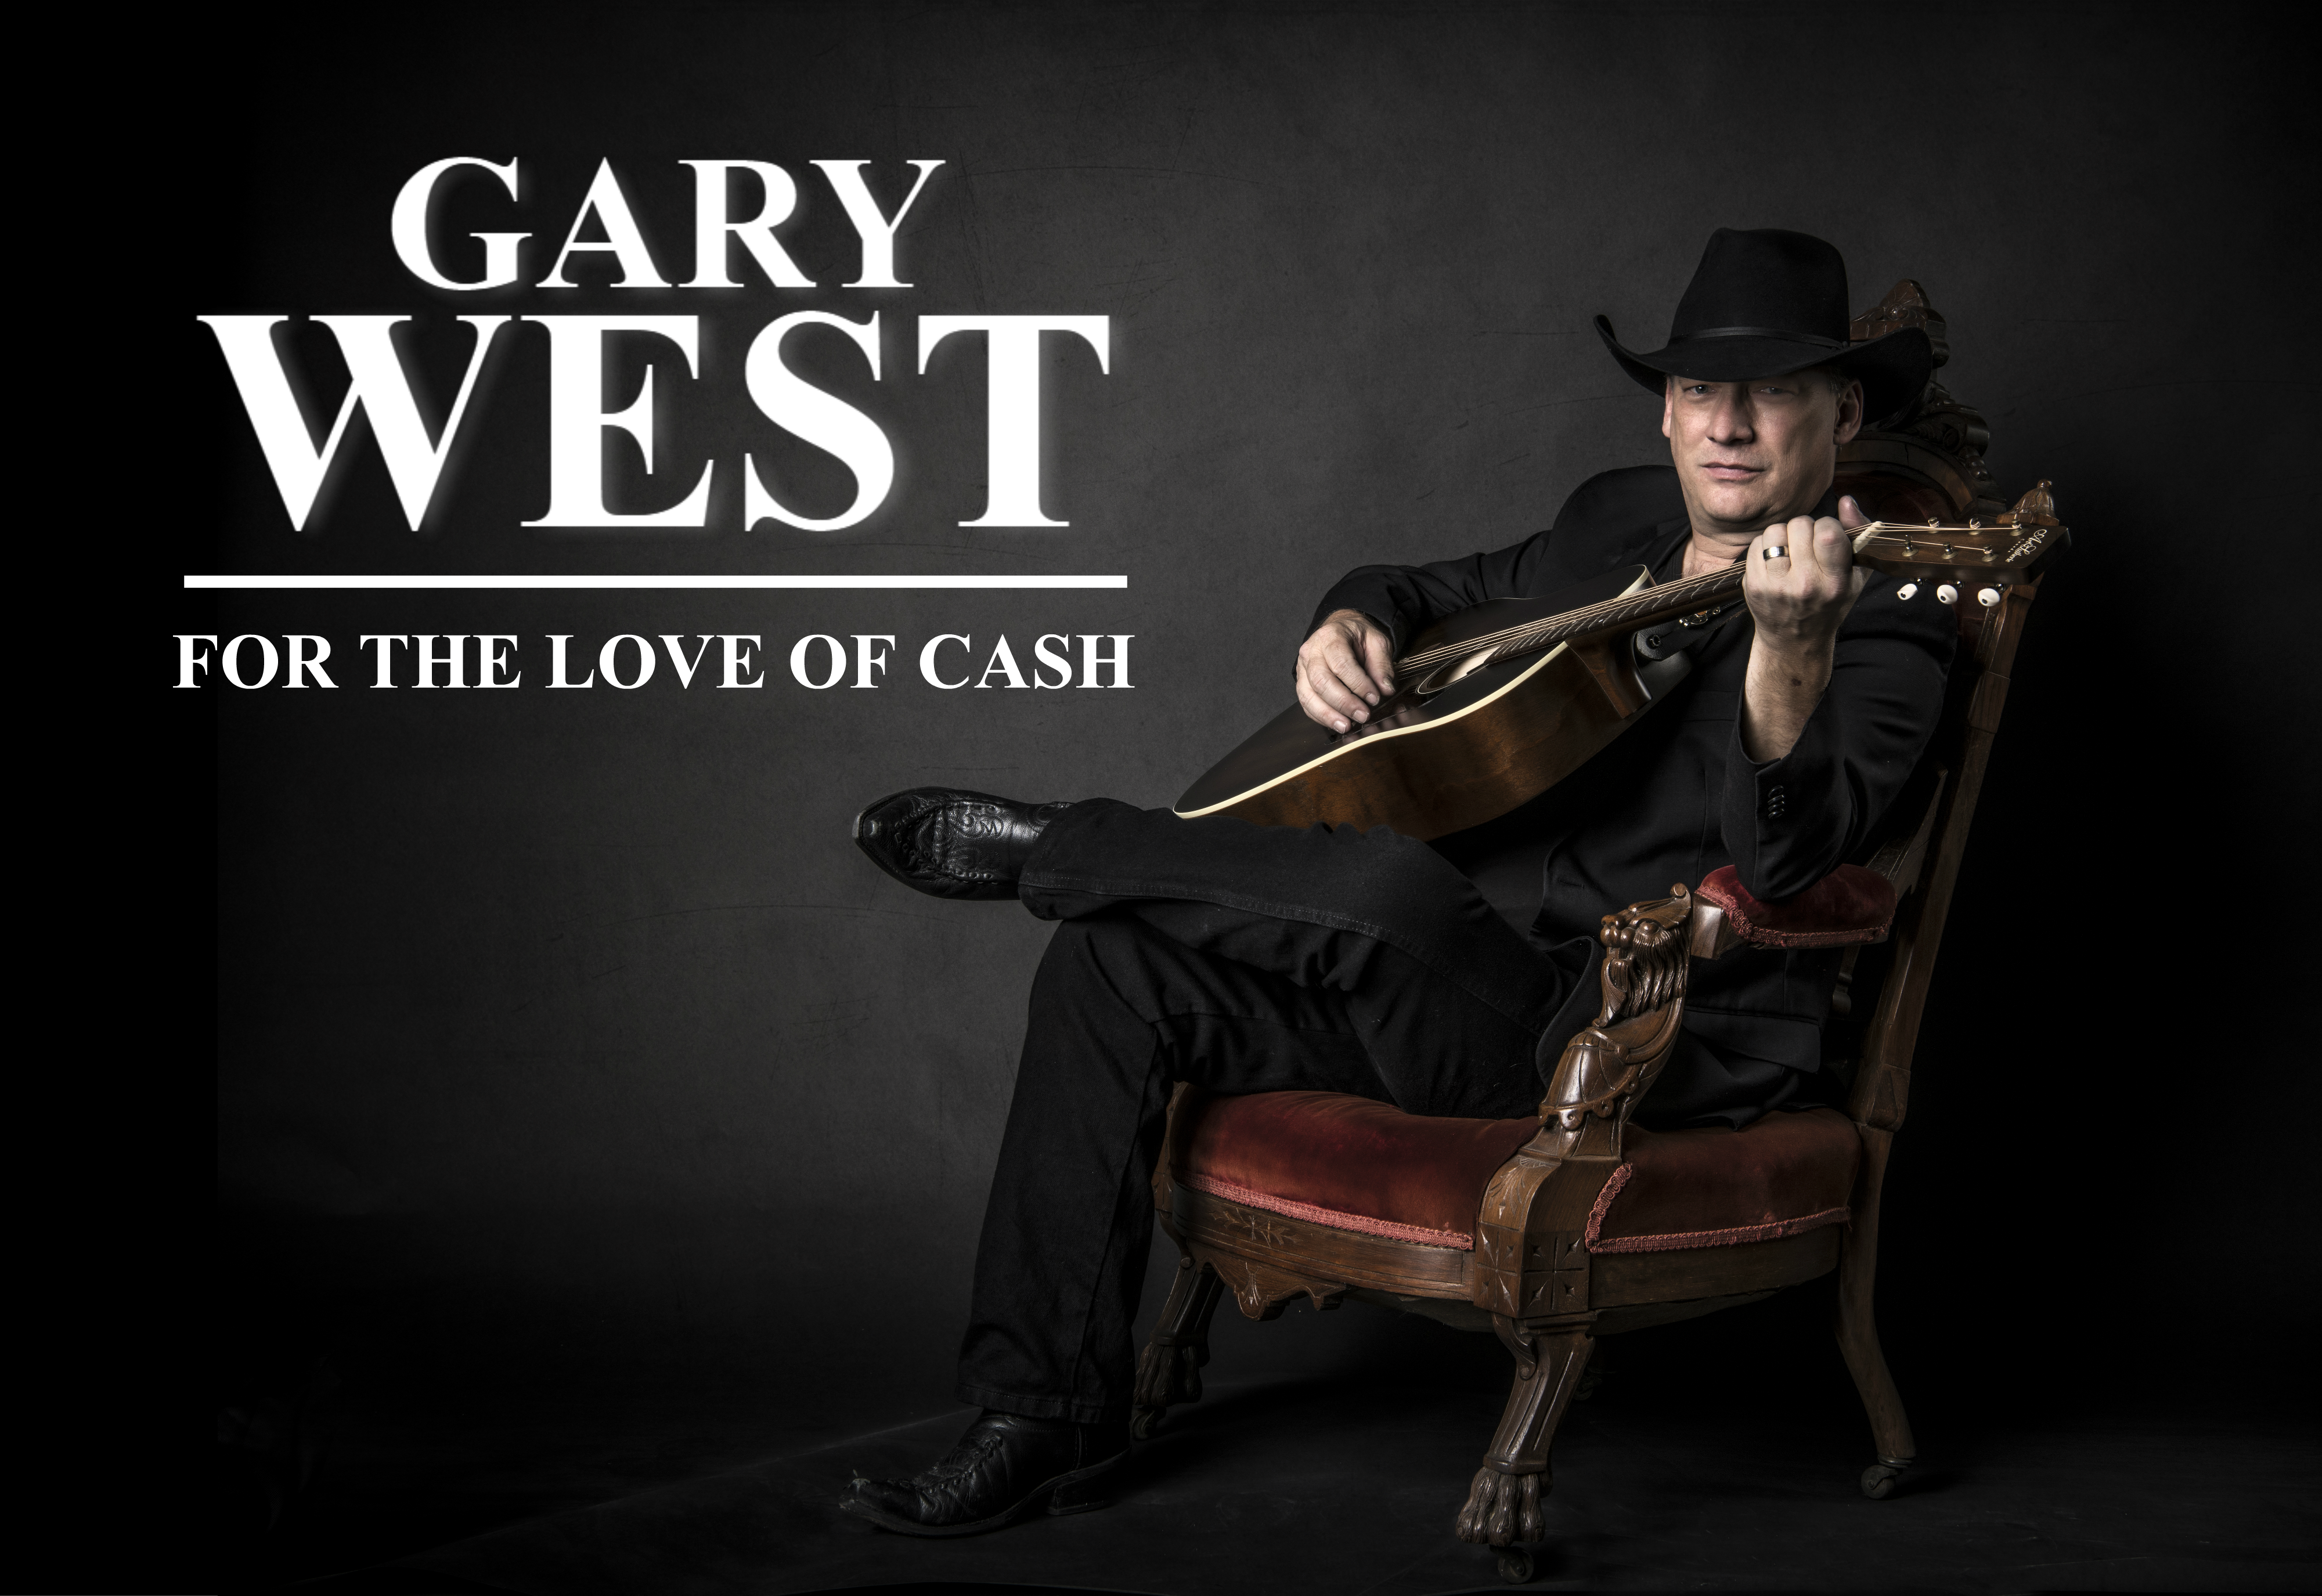 GARY WEST PROMOTIONAL PHOTO WITH TEXT A PNG